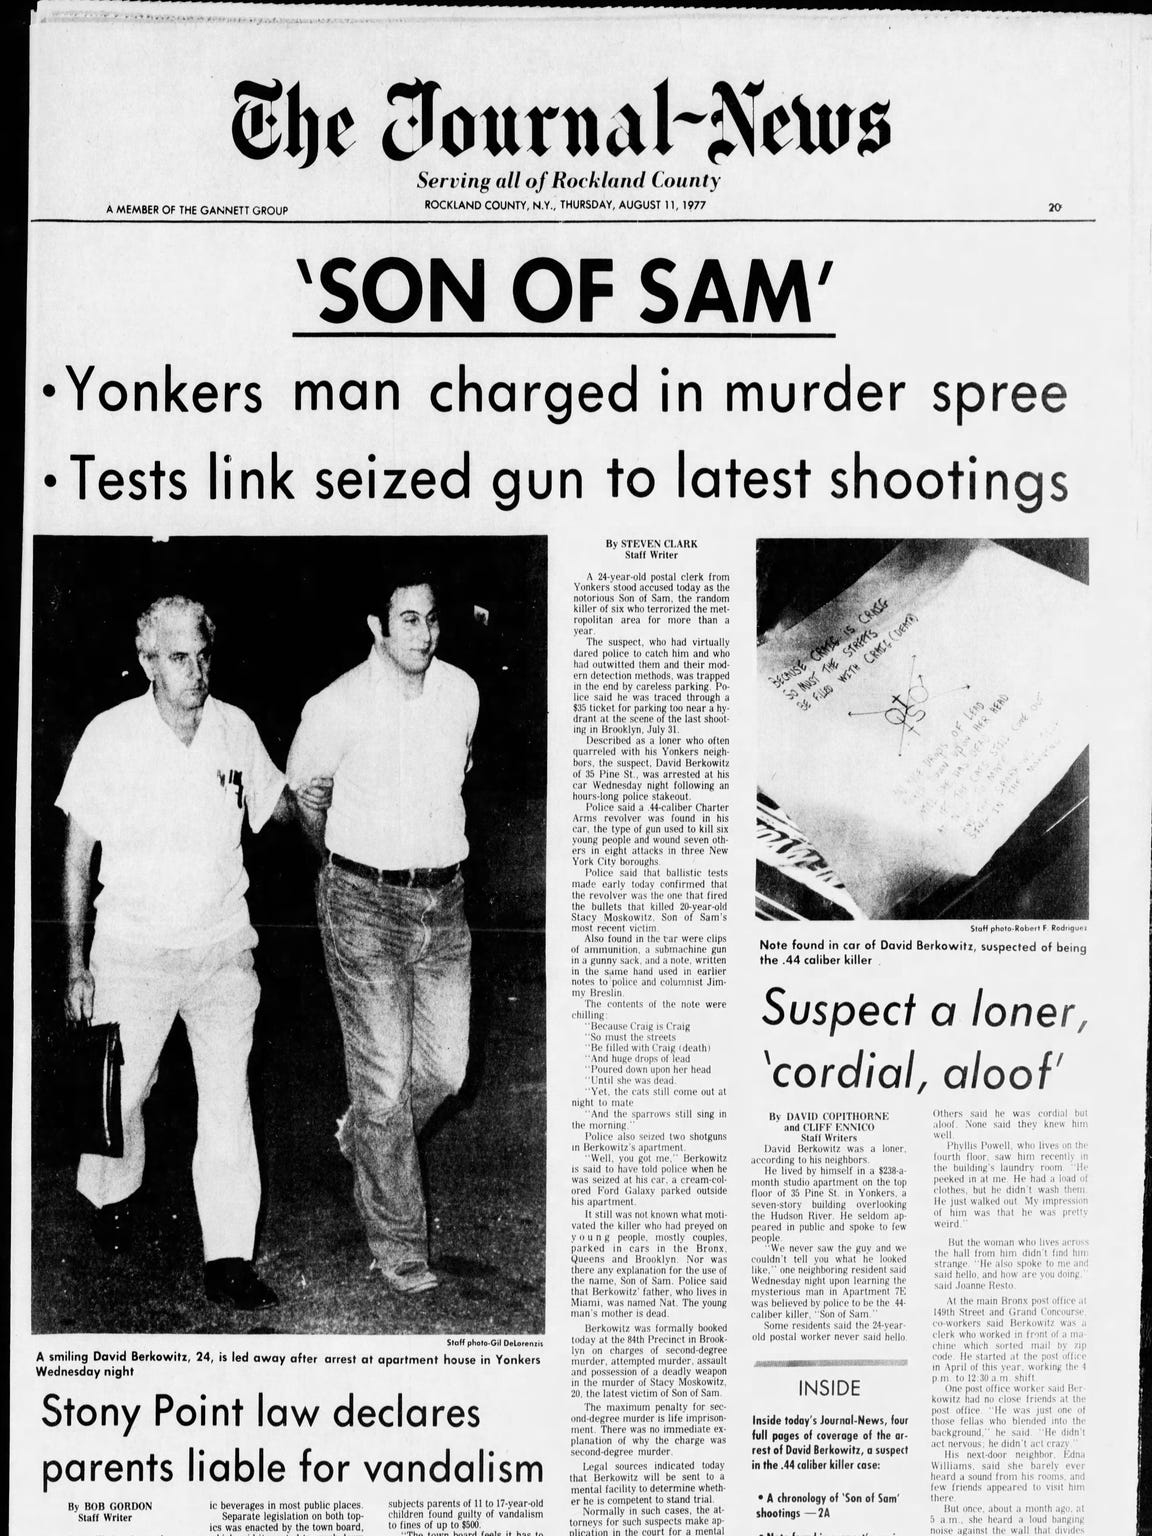 The front page of The Journal News from Aug. 11, 1977,